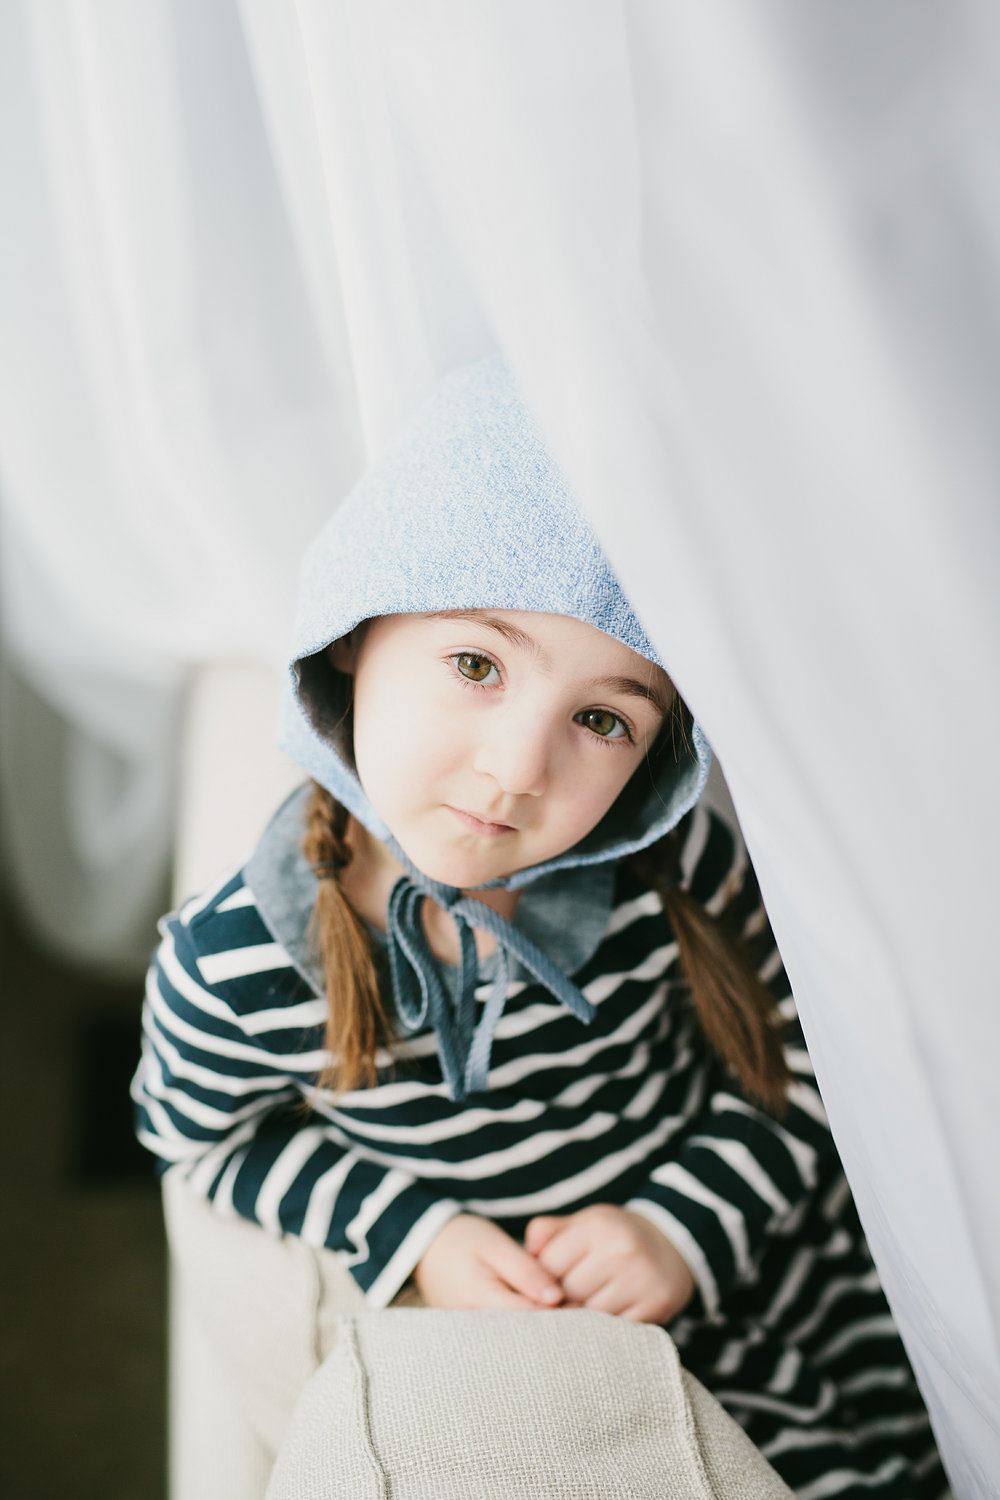 How-to-guide-for-kids-lifestyle-photography-14ten-lifestyle-images-to-make-you-smile.jpg